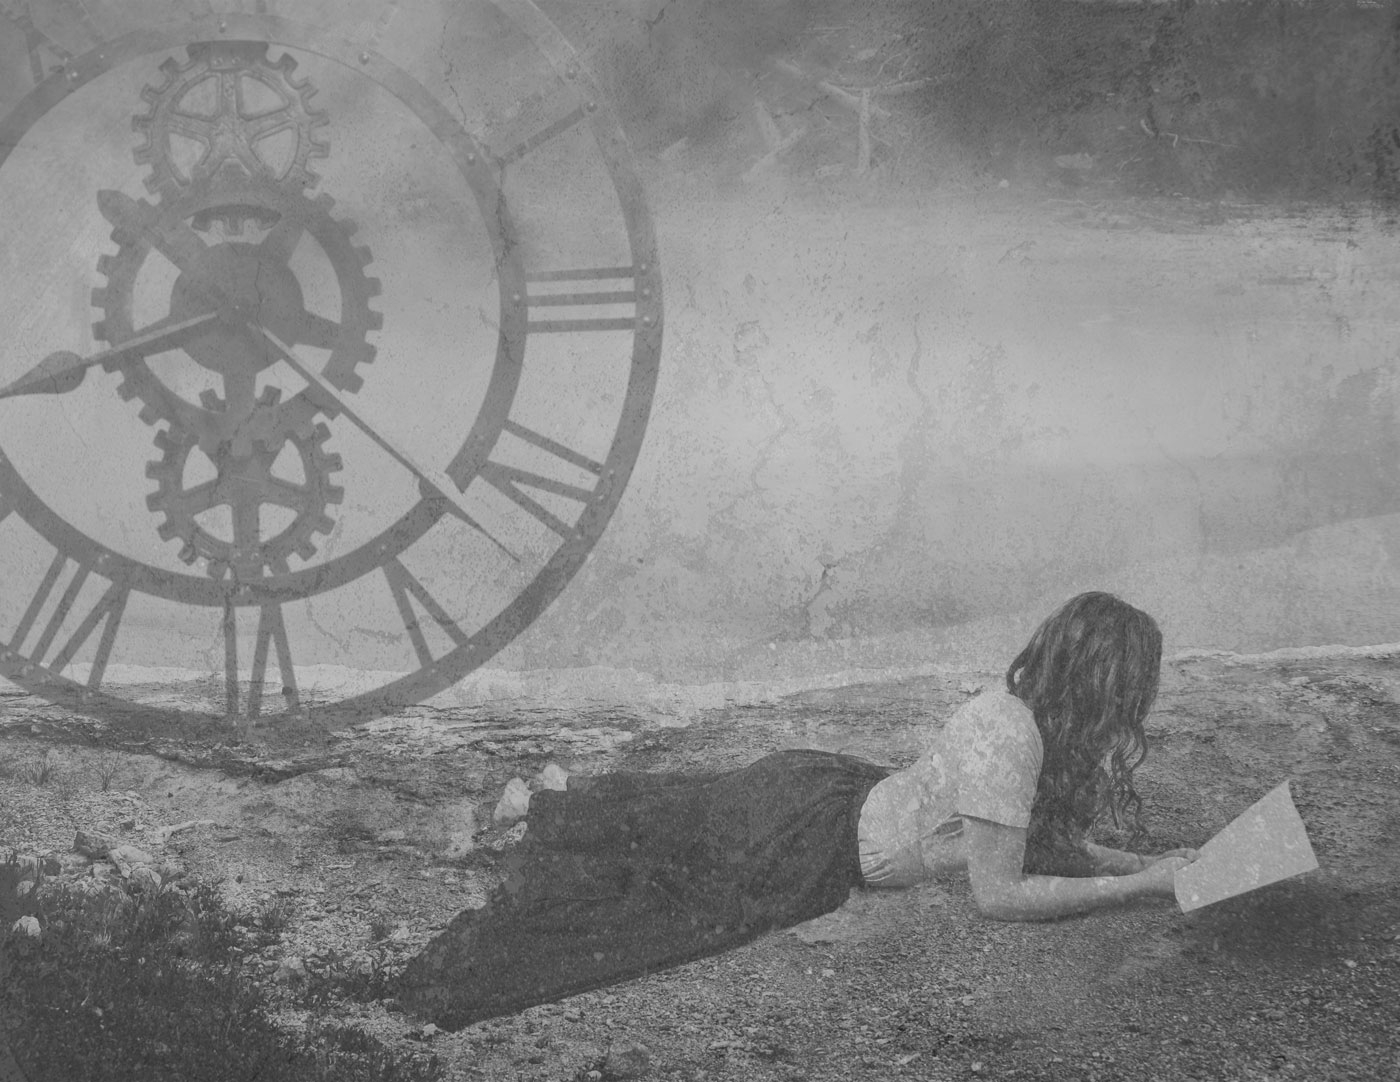 A woman in a dress lies reading on a foggy beach, her hair falling down to hide her face. An enormous mechanical clock hangs in the air.